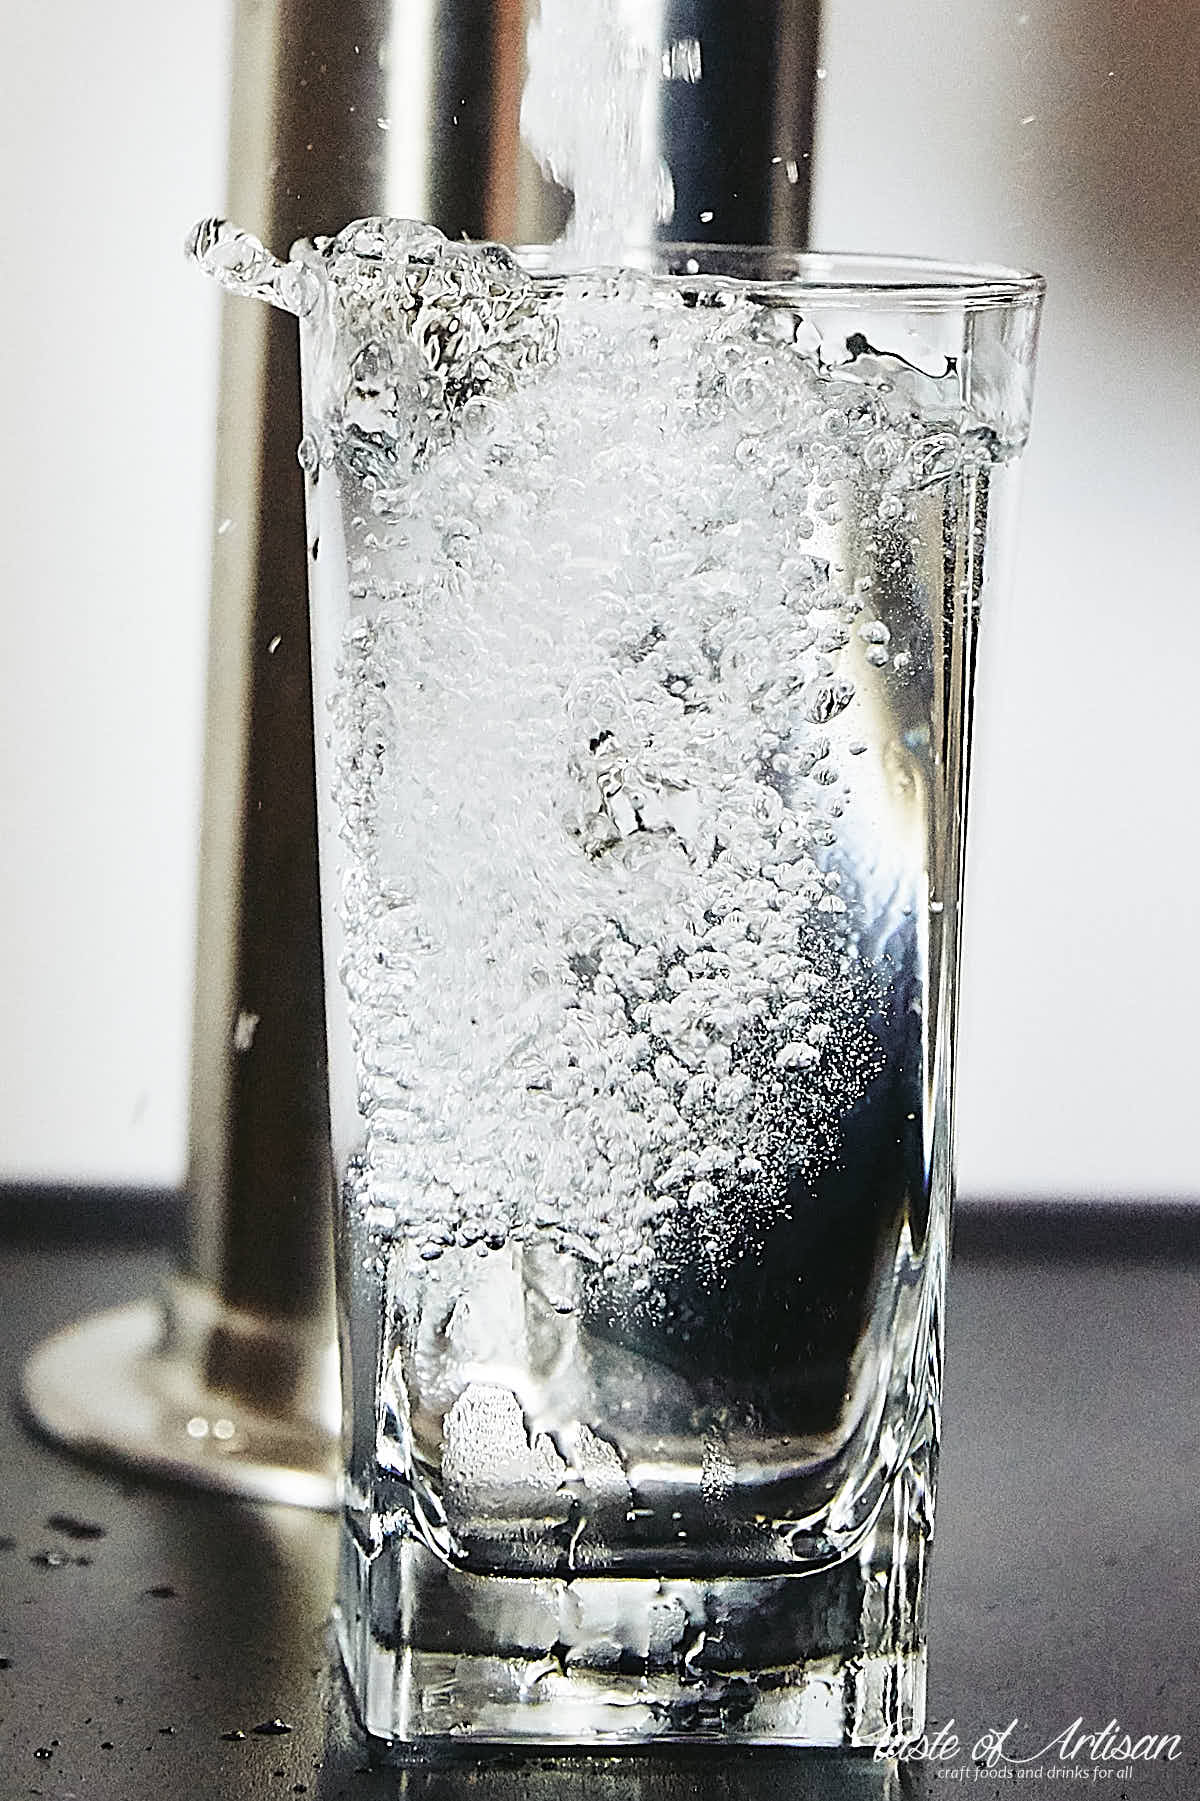 Home carbonated water poured in glass